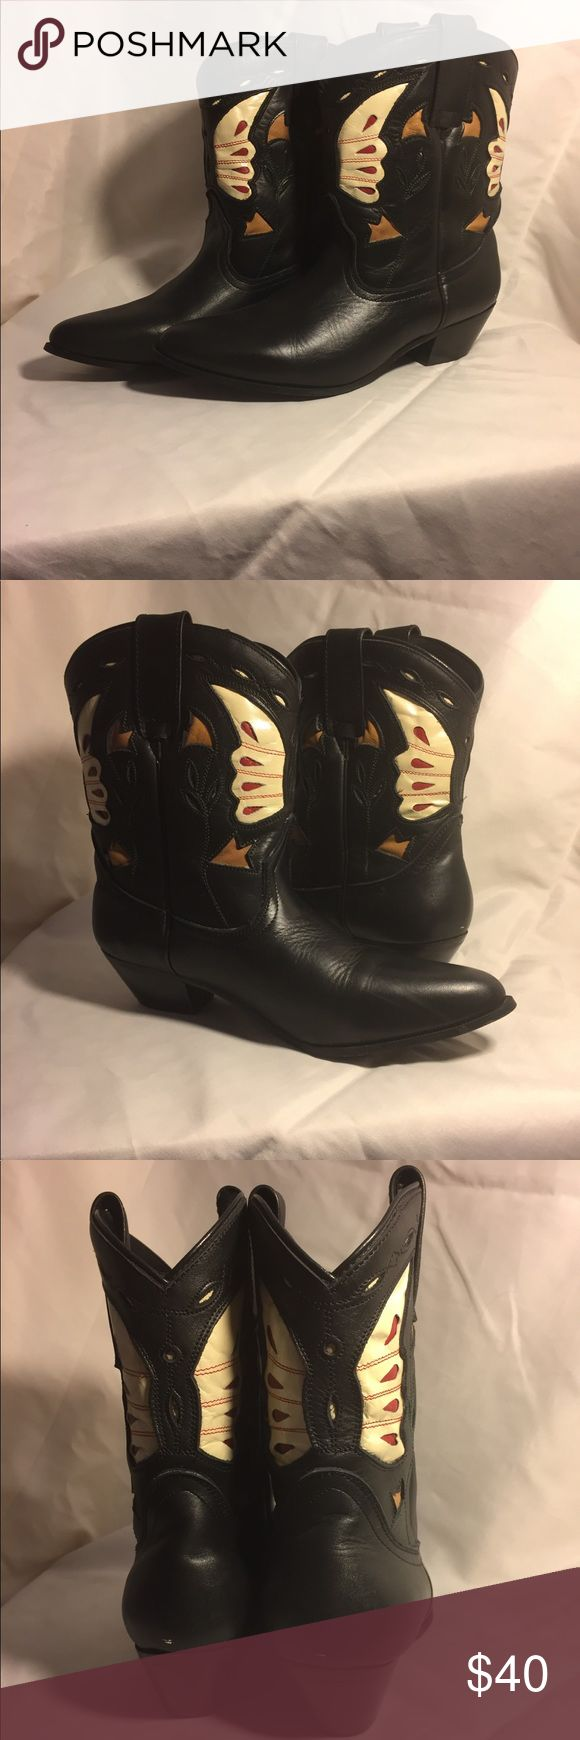 Oak Tree Farms Cowgirl Boots Gorgeous Butterfly Cutouts Cowgirl ankle Boots from Oak Tree Farms. It says size 8 on boots but would fit a size 7-7.5 better. Perfect condition, only worn a few times. Back of heels have minimal white marks, the leaves lost a bit of colors. see all pictures. Genuine leather. oak tree farms Shoes Ankle Boots & Booties